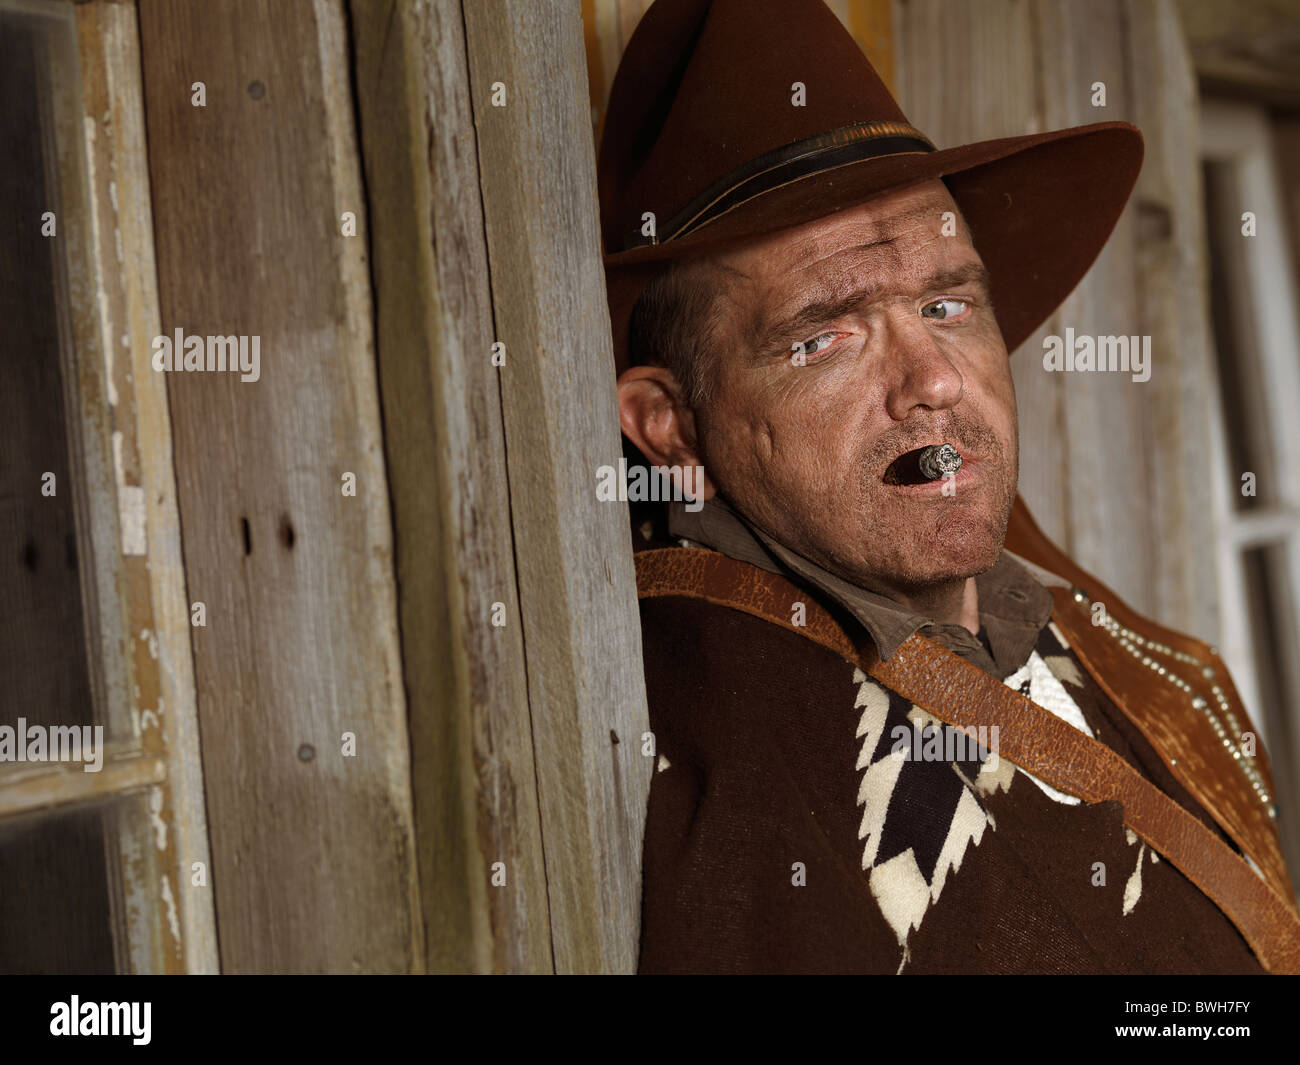 Dramatic portrait of a cowboy leaning against a wall of a wooden house with a cigar in his mouth - Stock Image